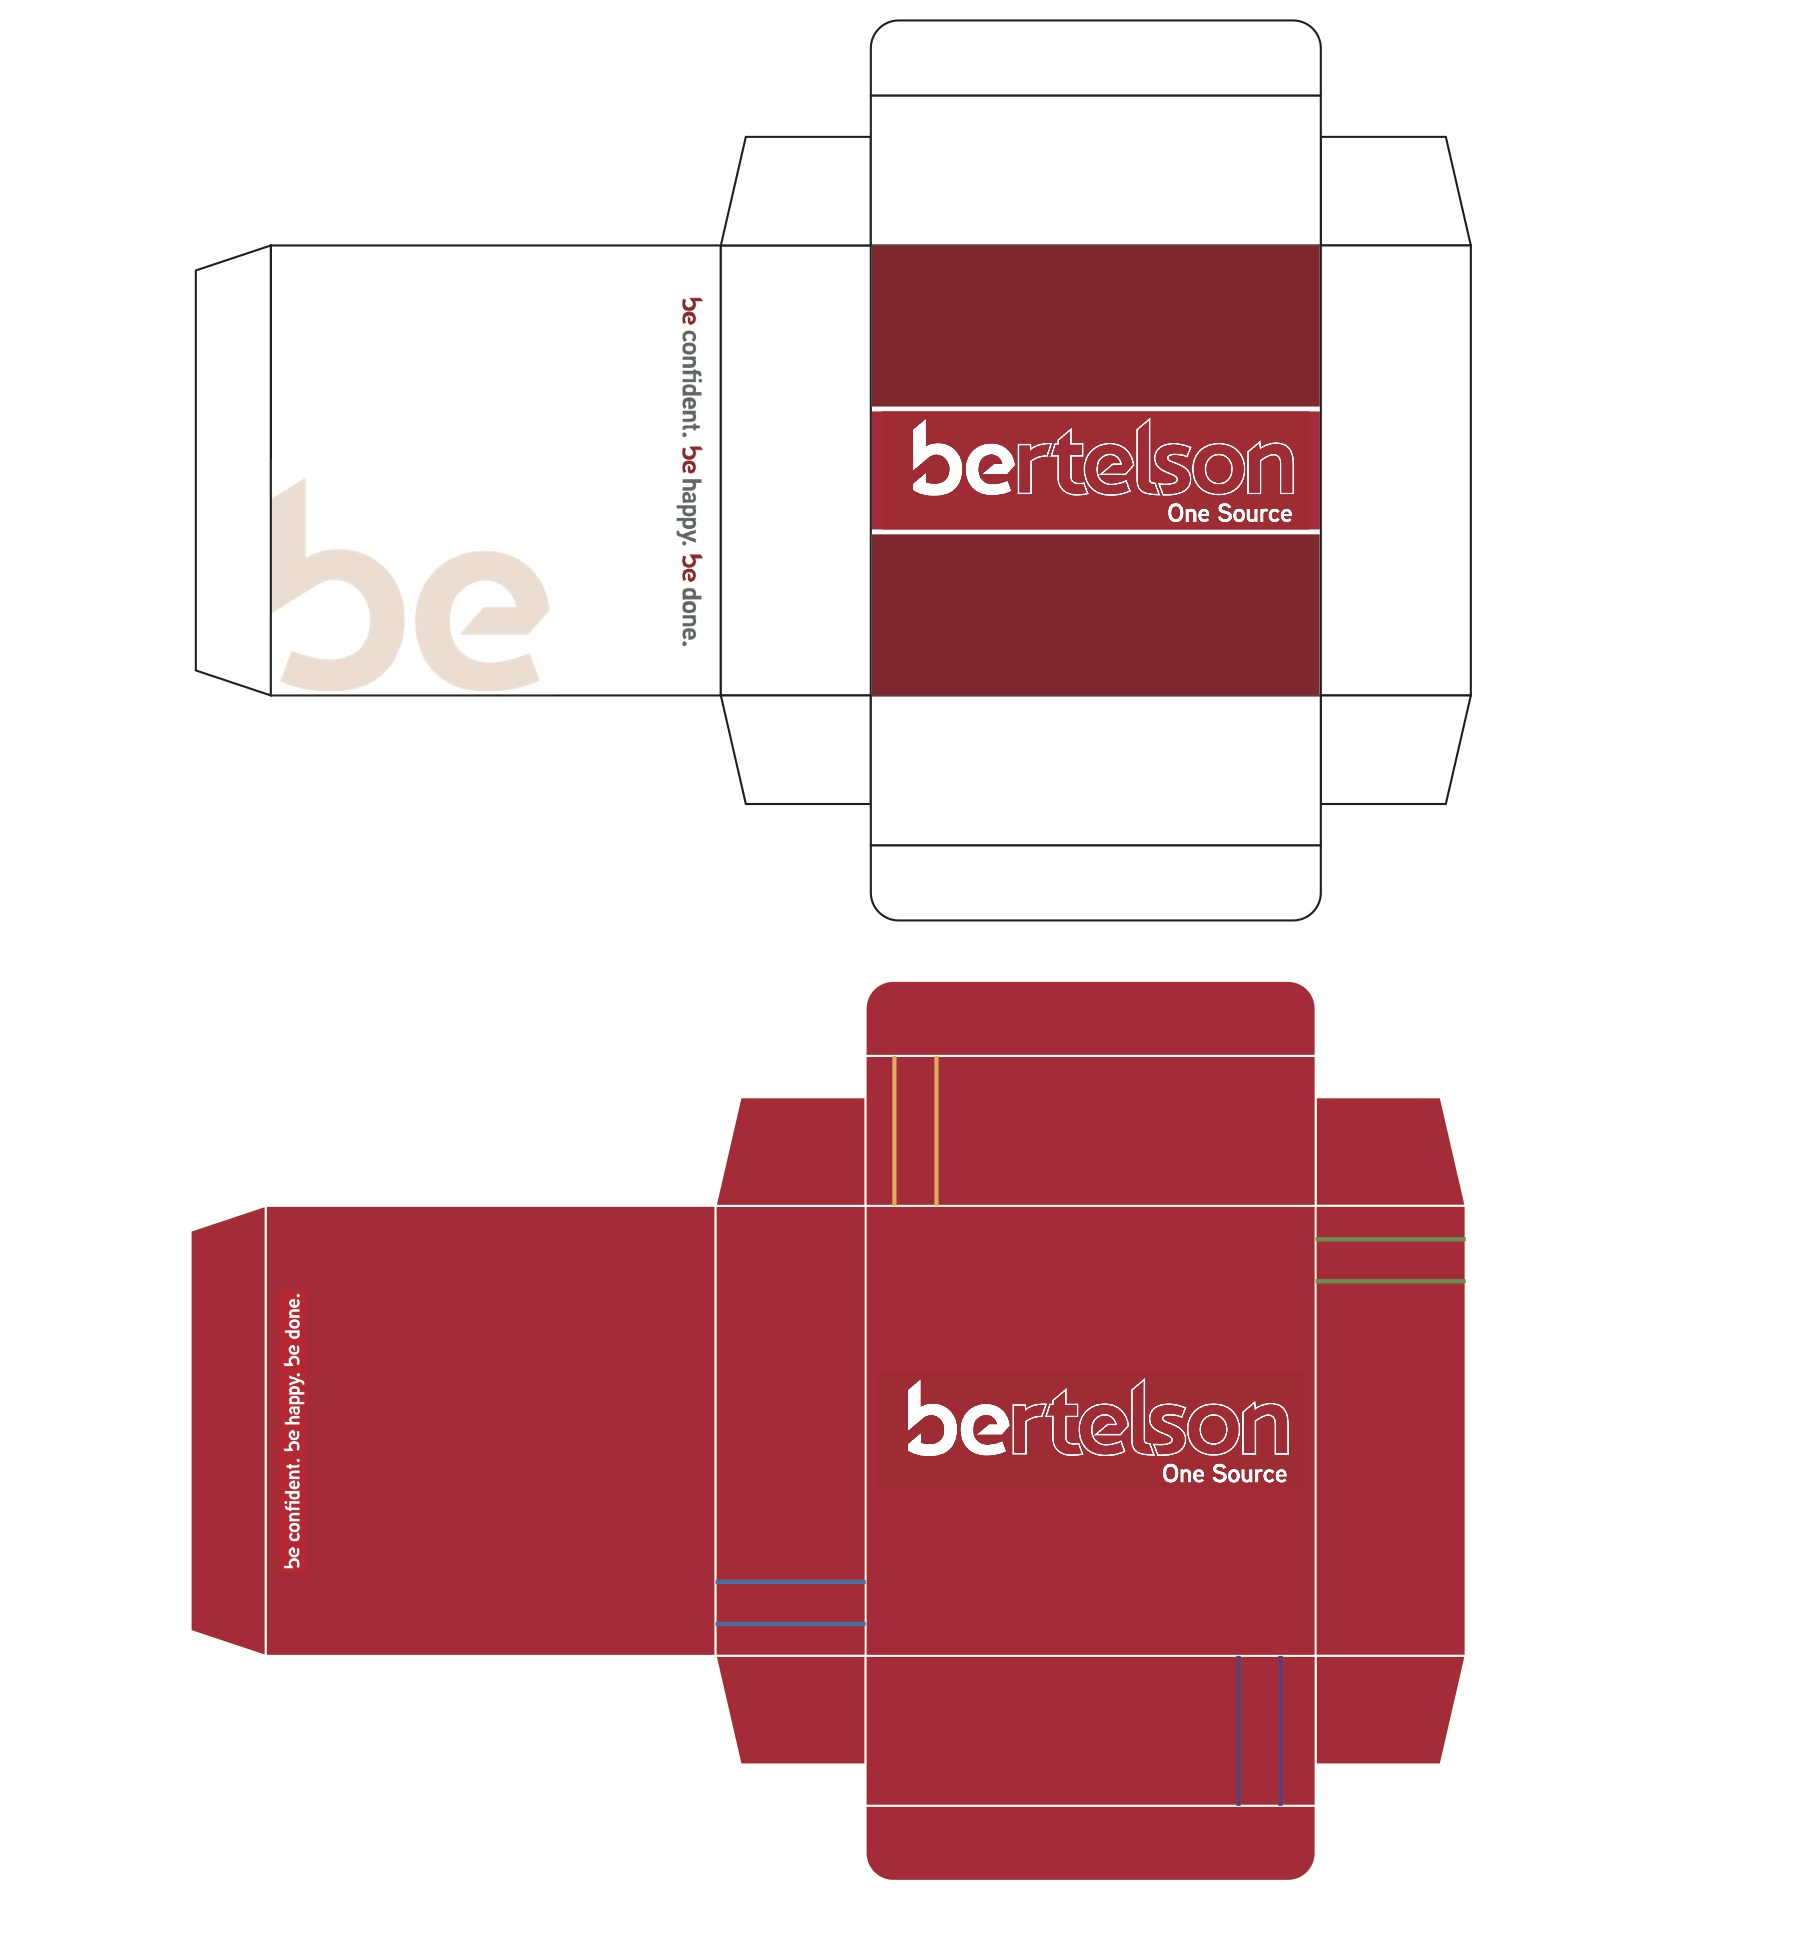 Beau Package Design U2013 Created And Designed A Container For Bertelson Office  Supplies With Printed Graphics To Send Out The Annual Office Catalogs.